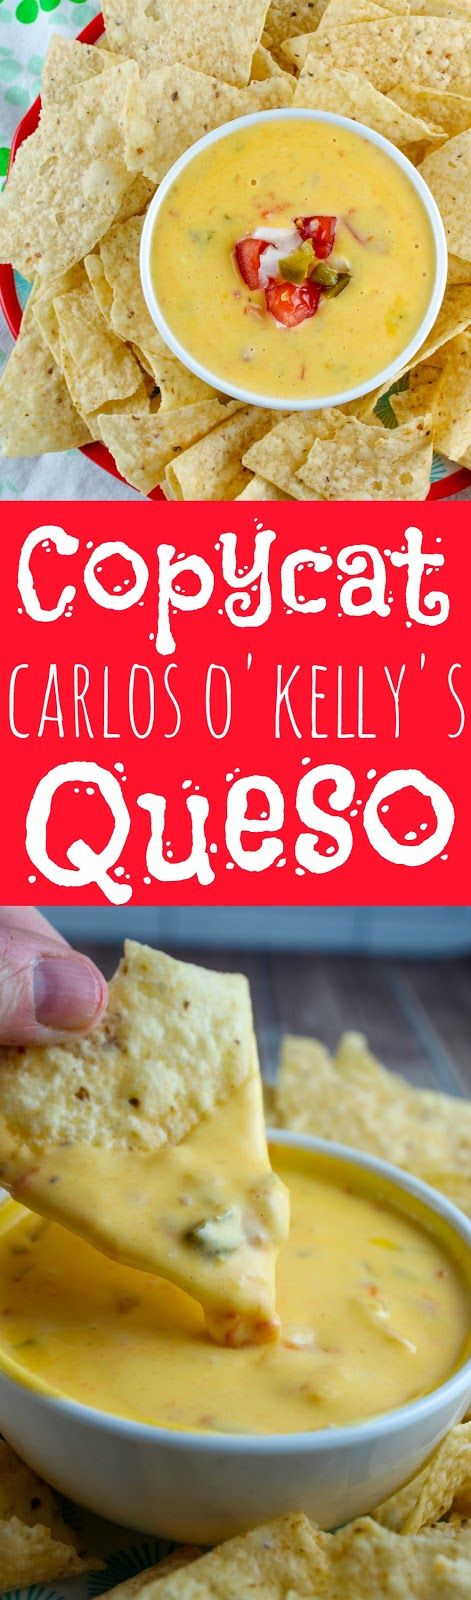 Food Hussy Recipe Copycat Carlos O Kelly S Queso The Best Queso Ever Recipe In 2020 Recipes Food Mexican Food Recipes